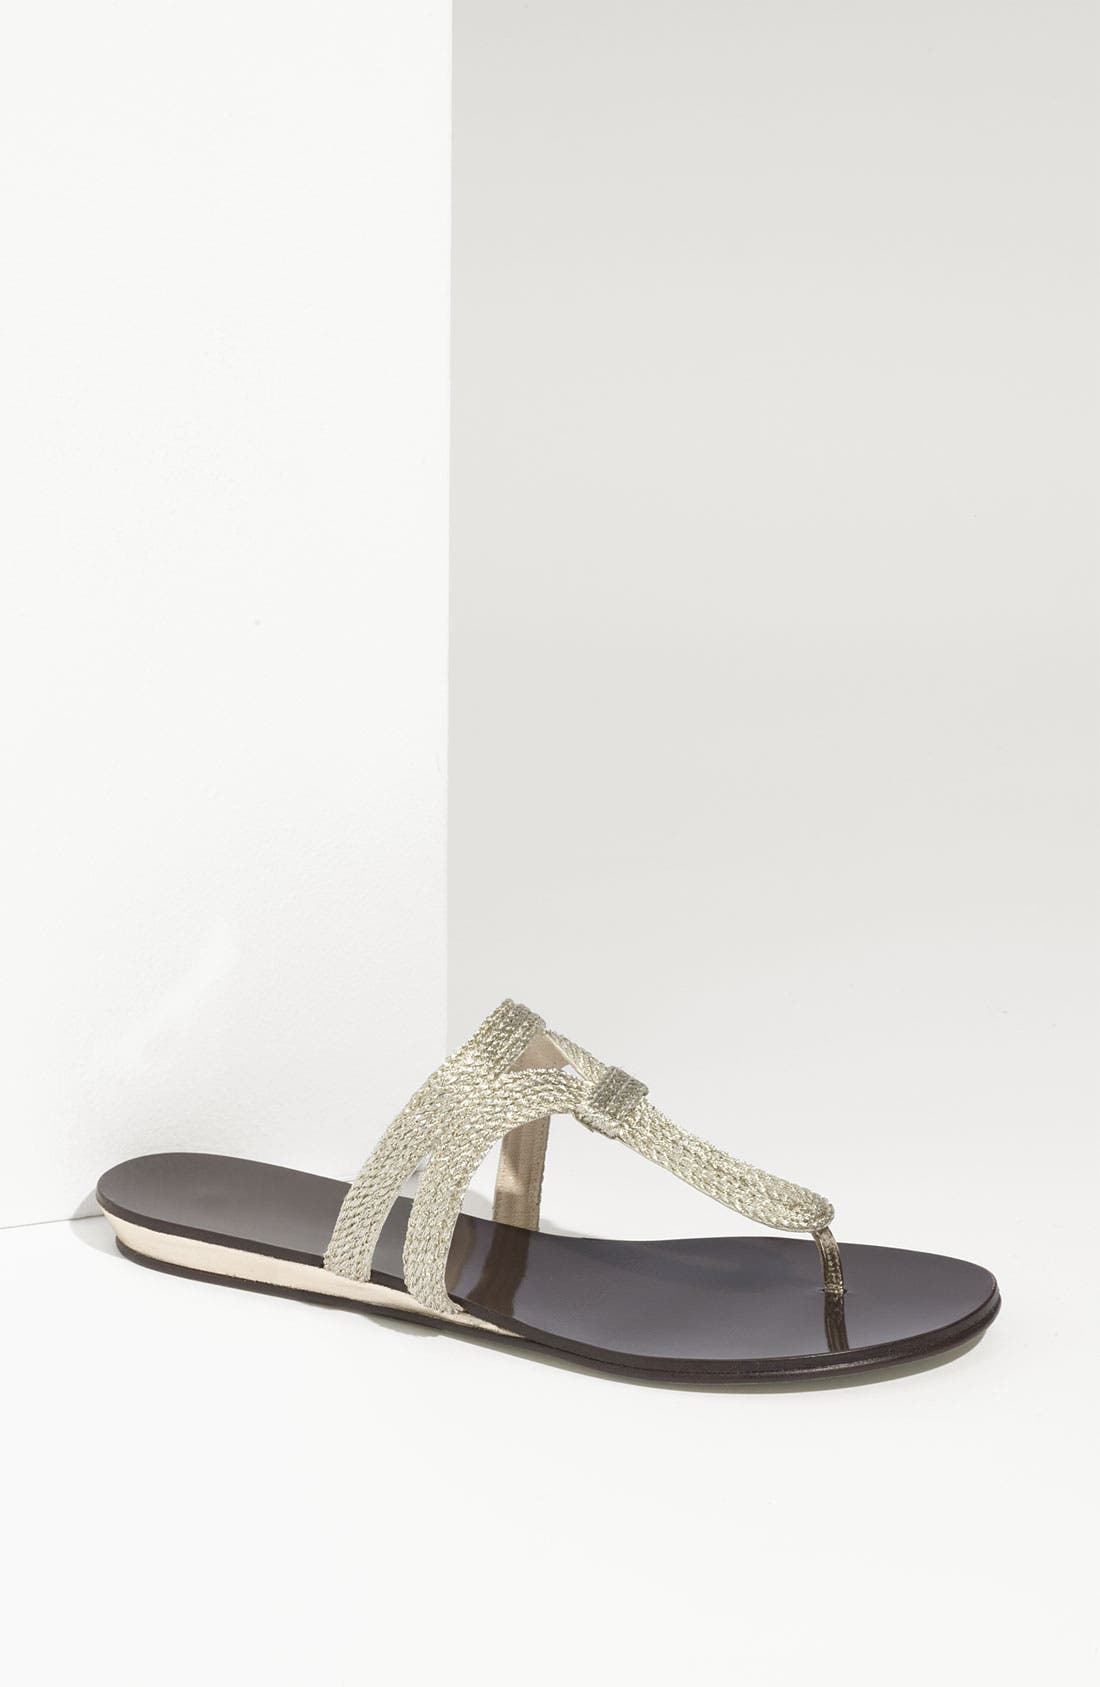 Alternate Image 1 Selected - L.K. Bennett 'Evelyn' Sandal